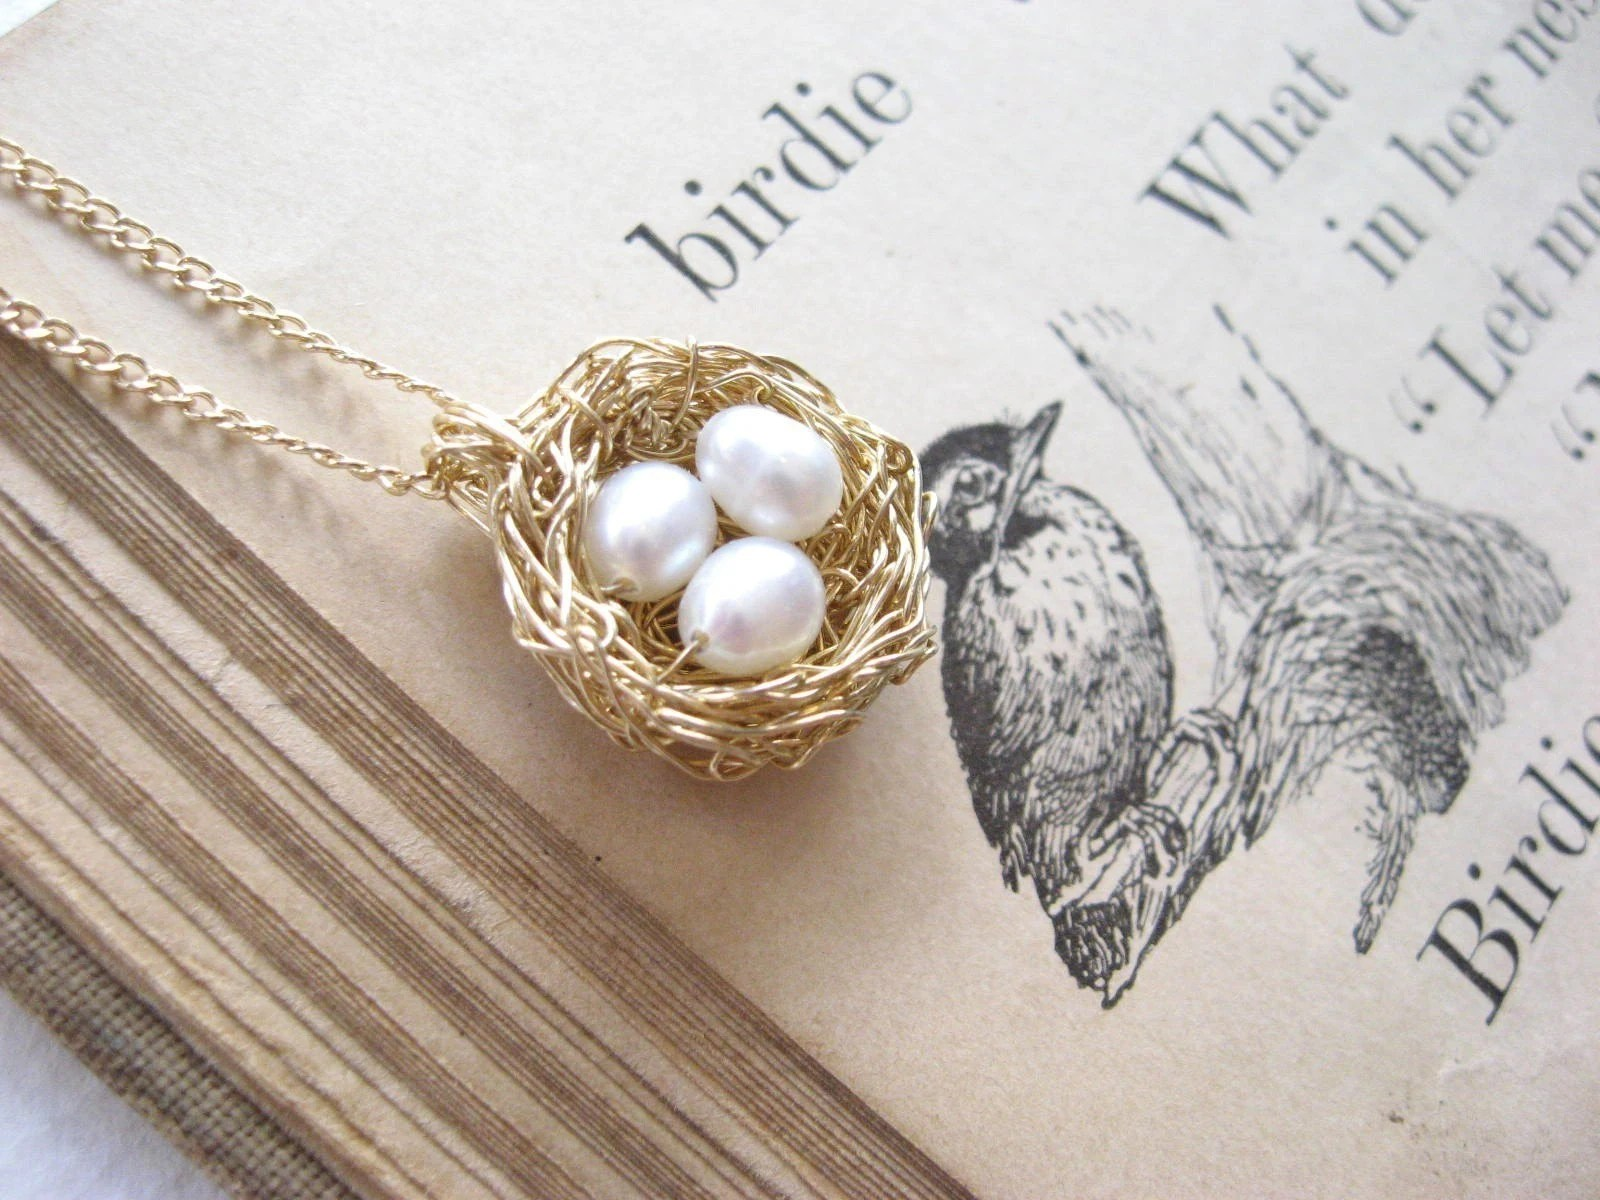 little bird's nest necklace...goldfill, 3 pearl eggs - PreciousMeshes